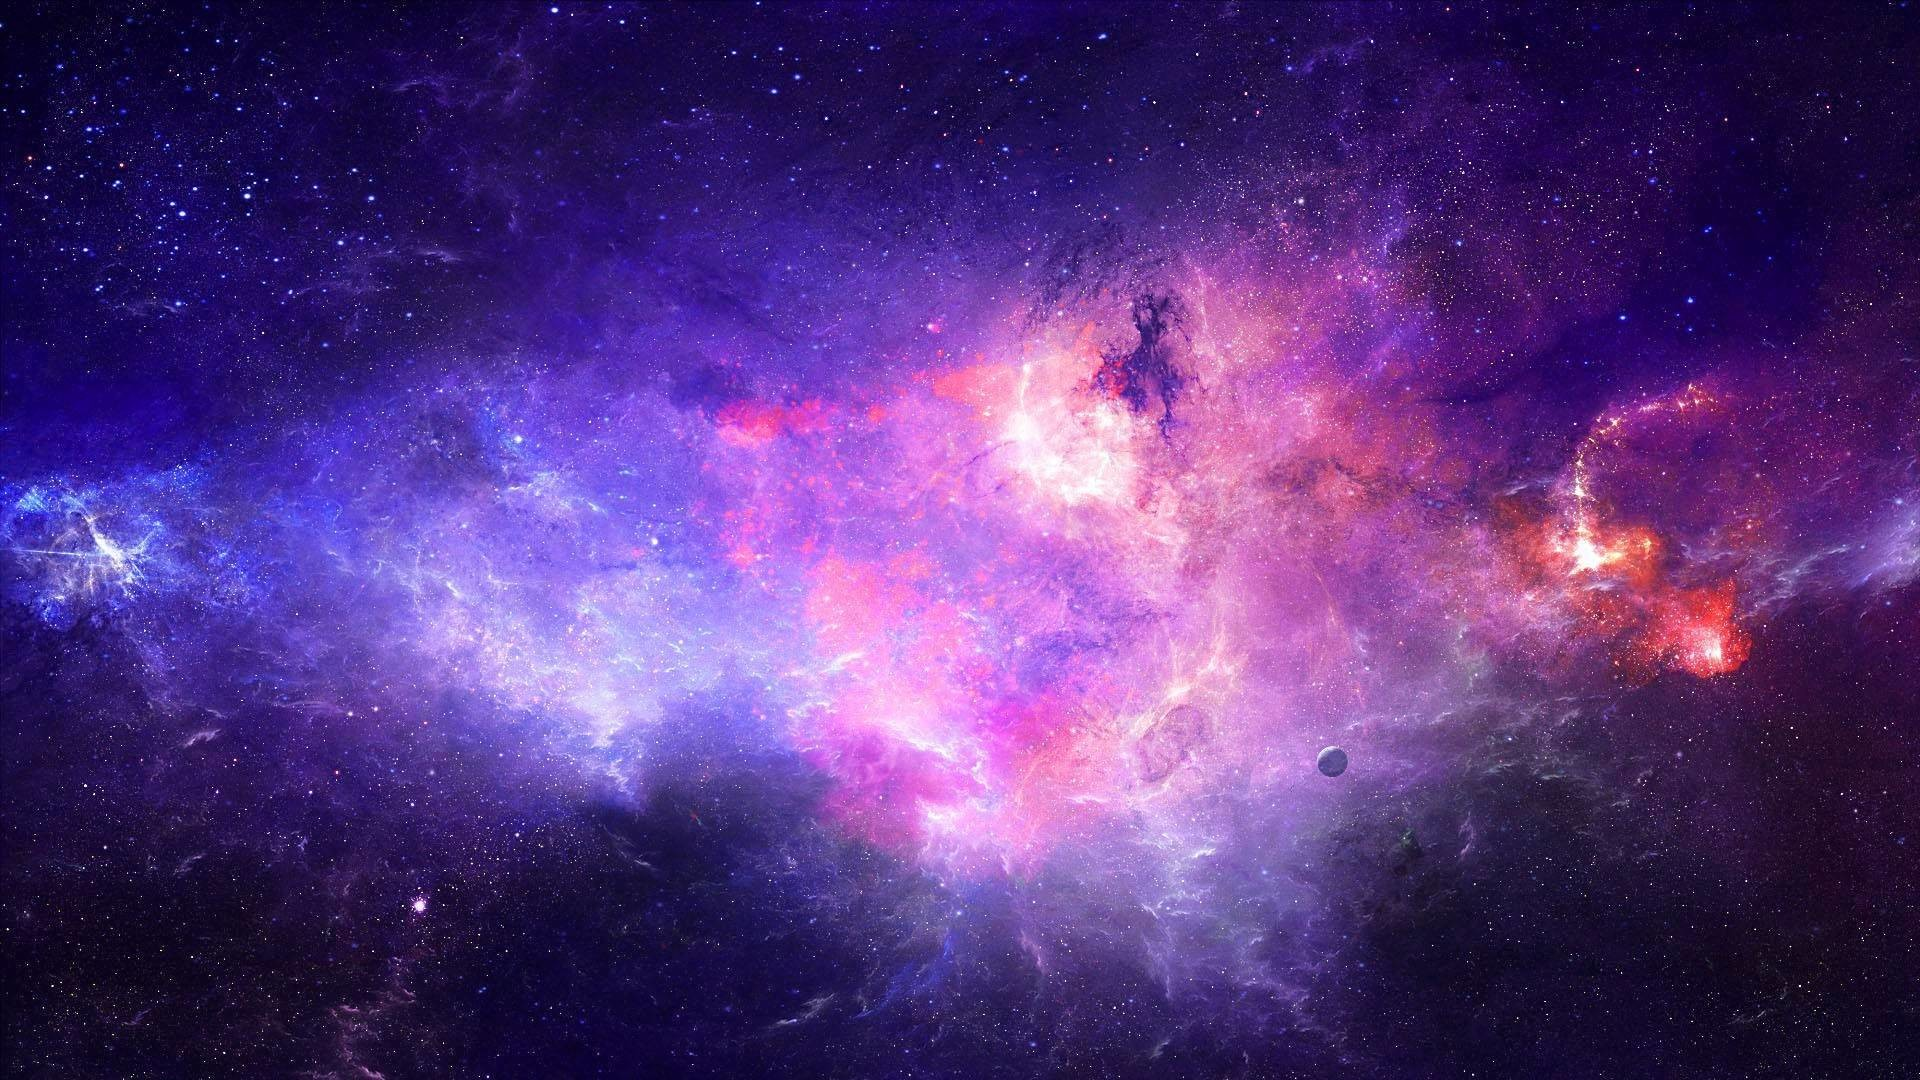 Space backgrounds 1920x1080 73 images 1920x1080 1920x1080 wallpaper planet rings sky space voltagebd Images